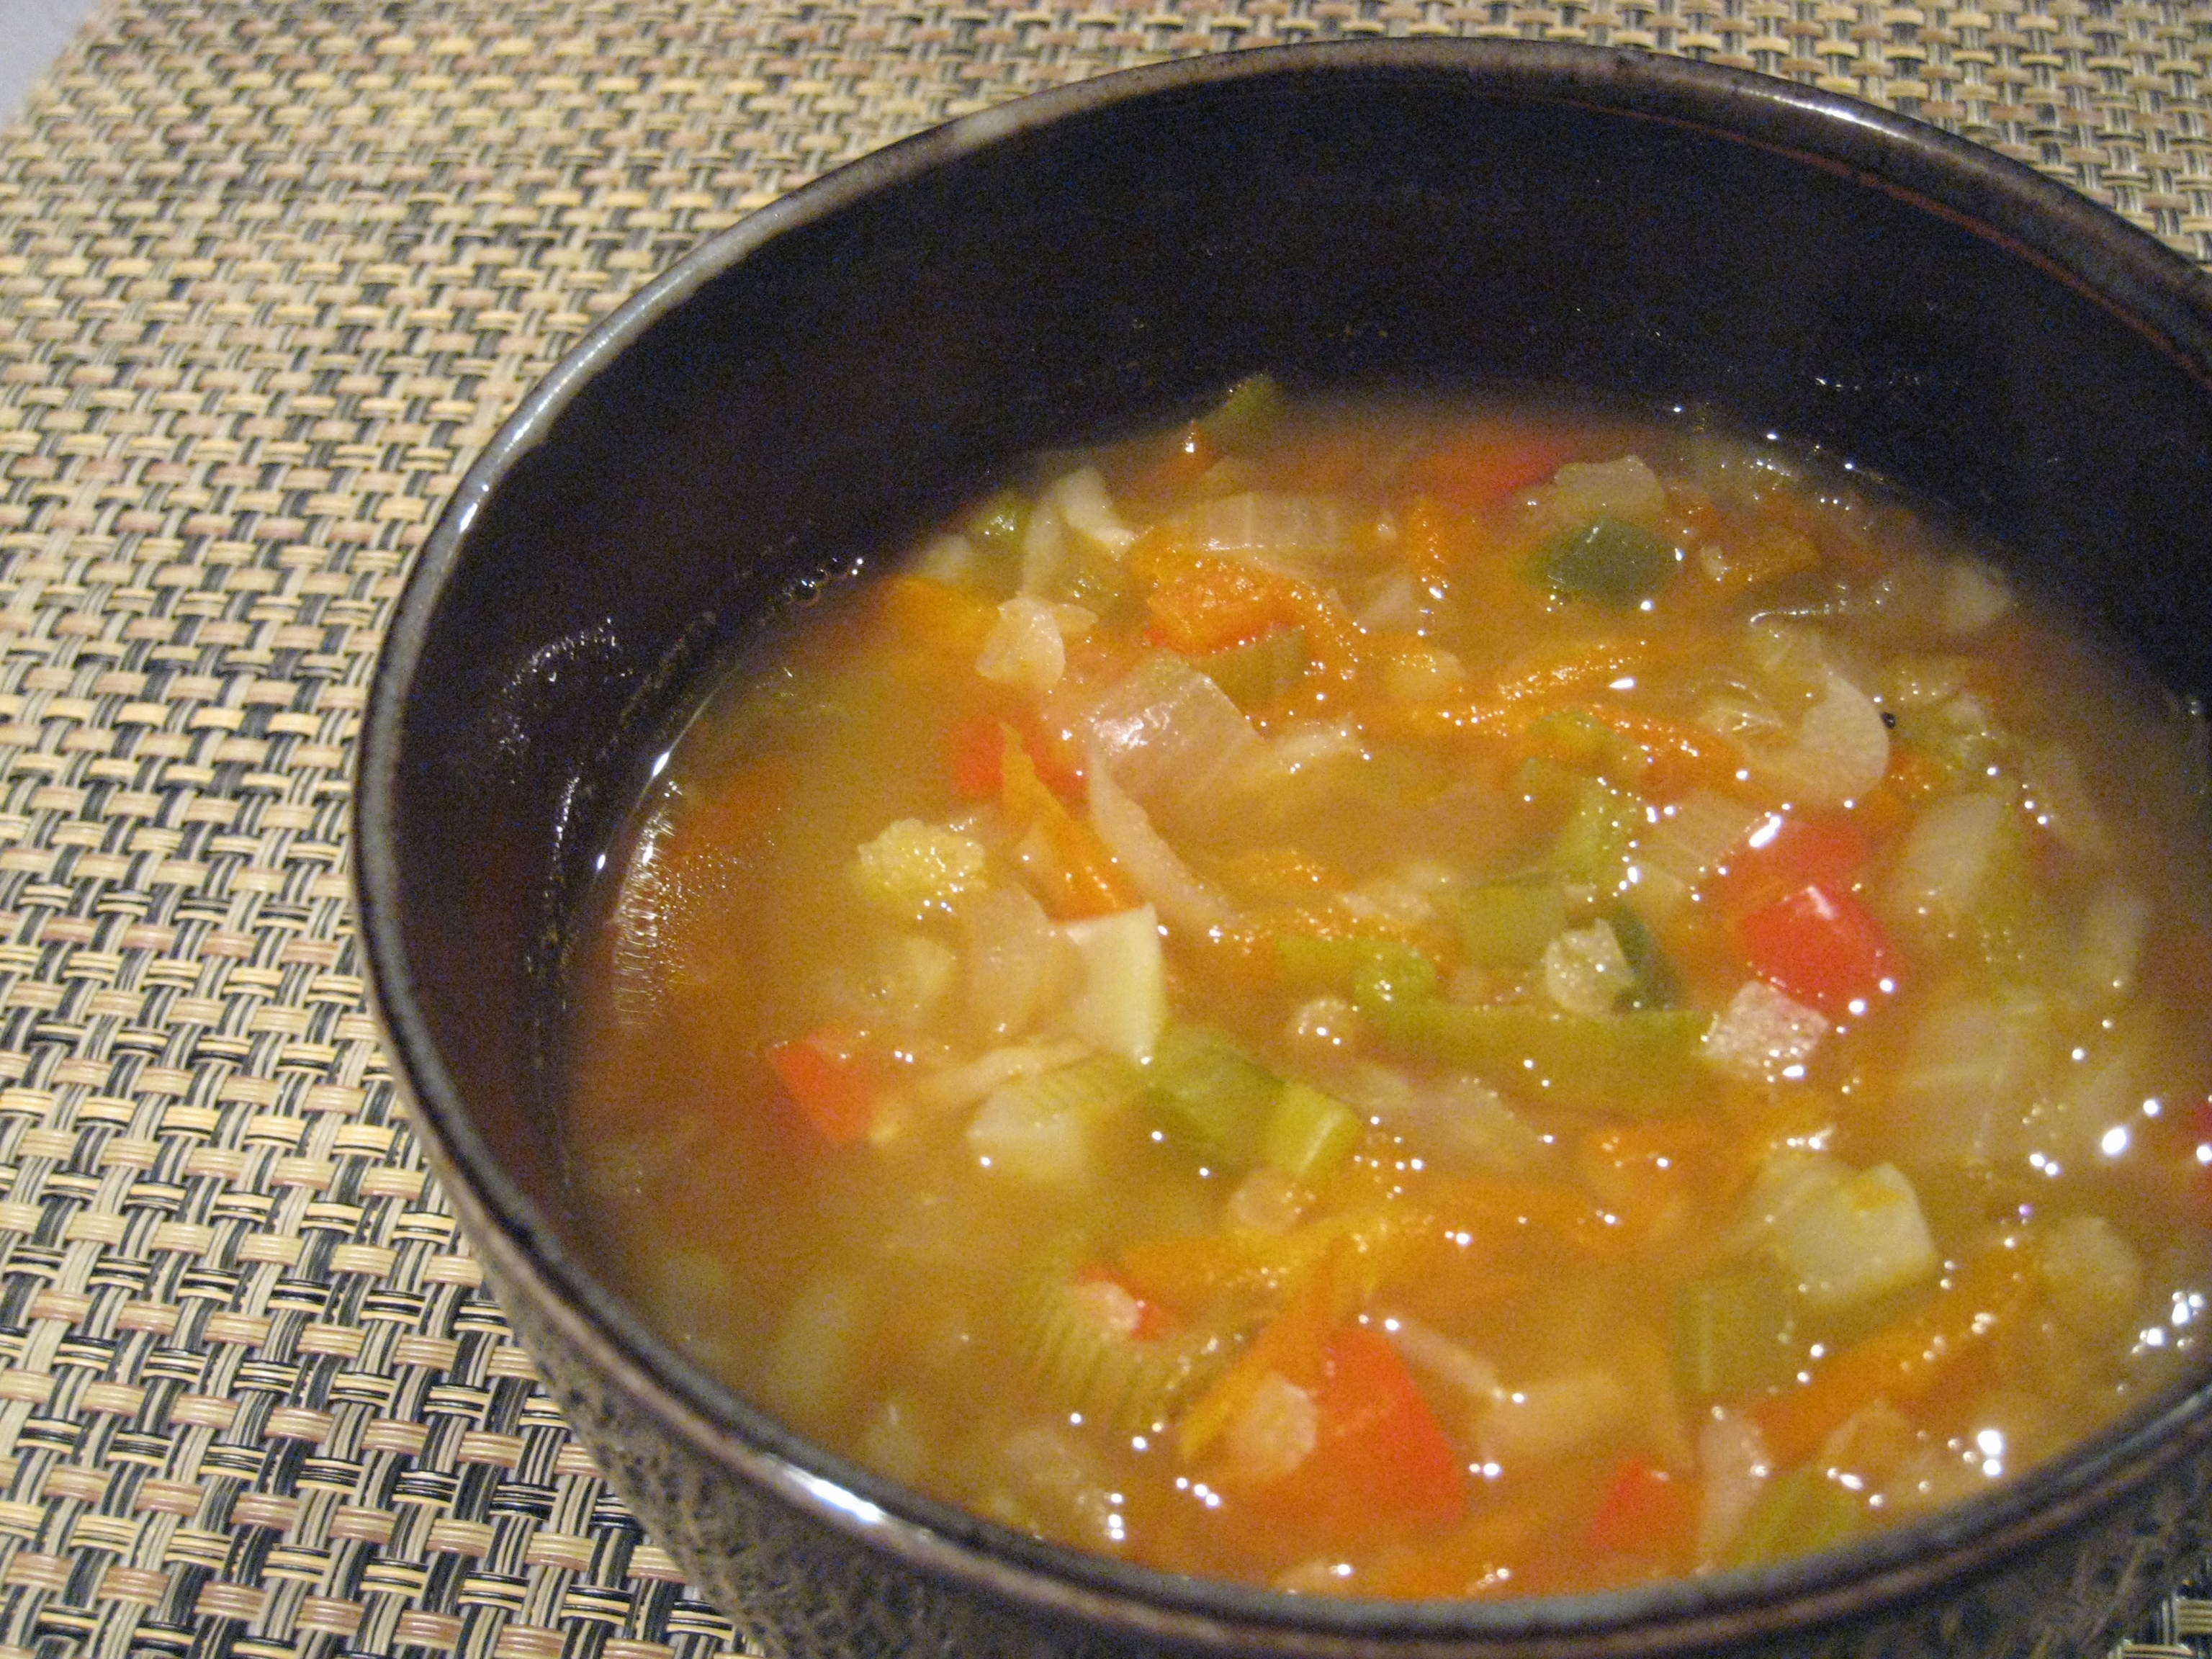 ... soup soup lentil soup red lentil soup with lemon lively up yourself